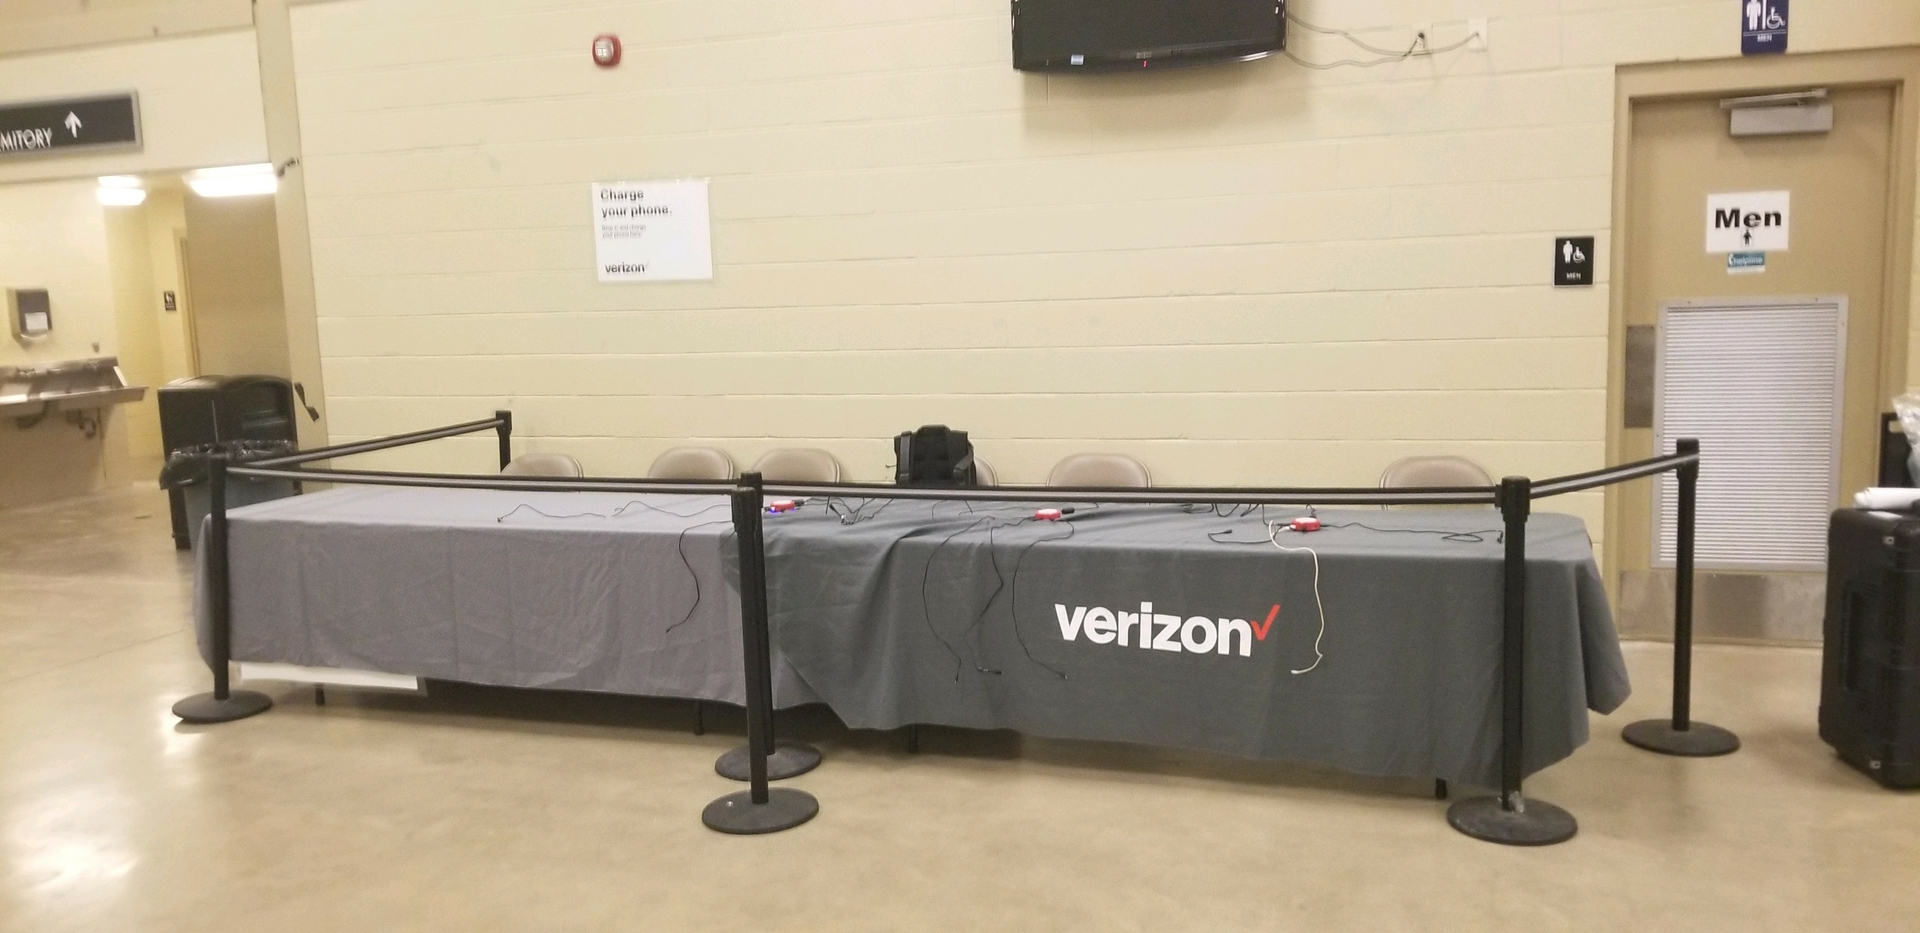 Verizon Response Team (1/5)